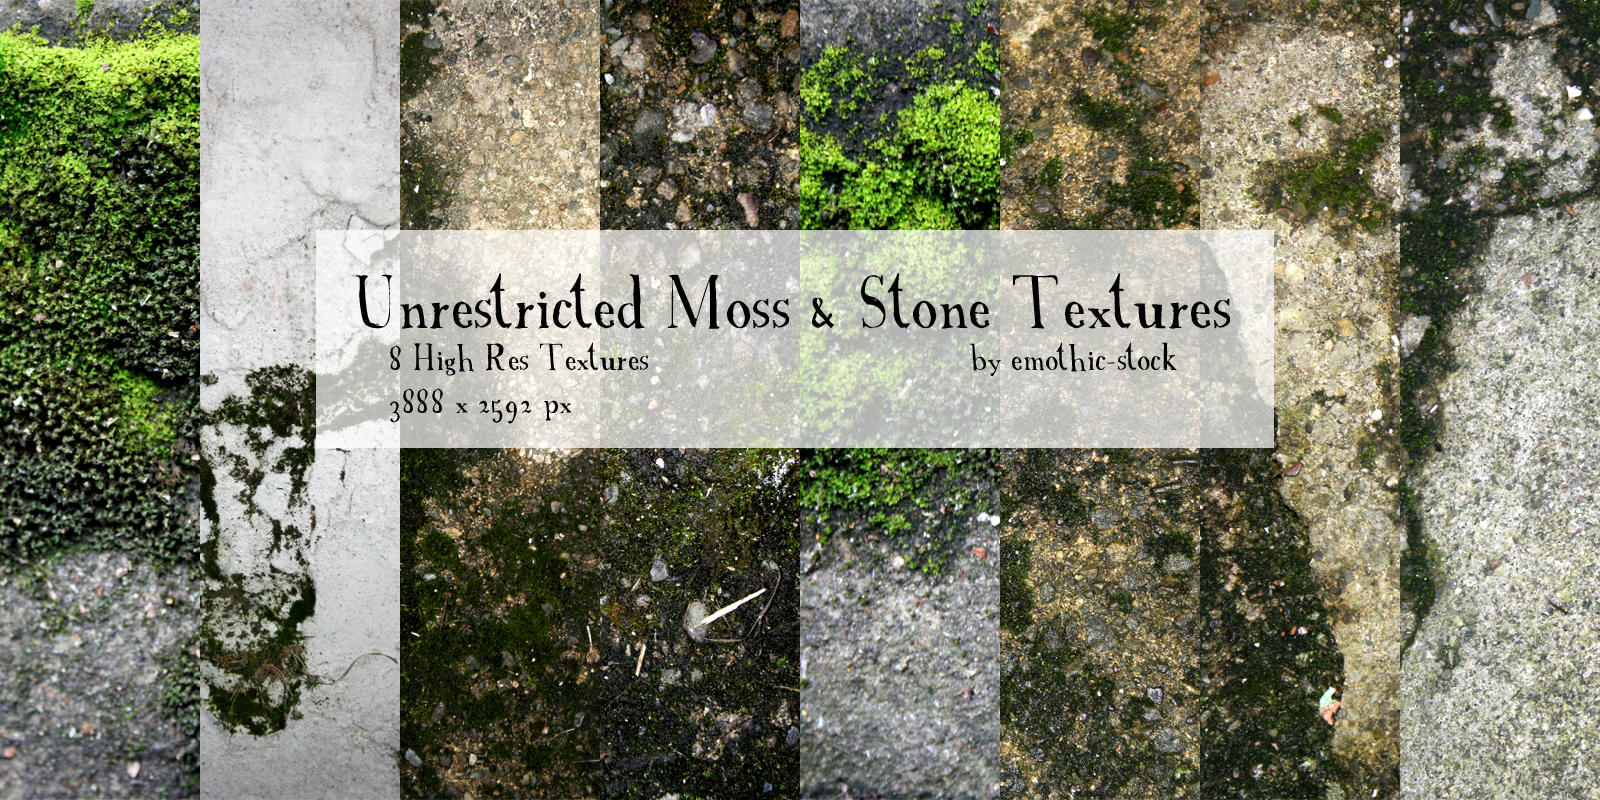 Unrestricted Moss and Stone Texture Pack by emothic-stock